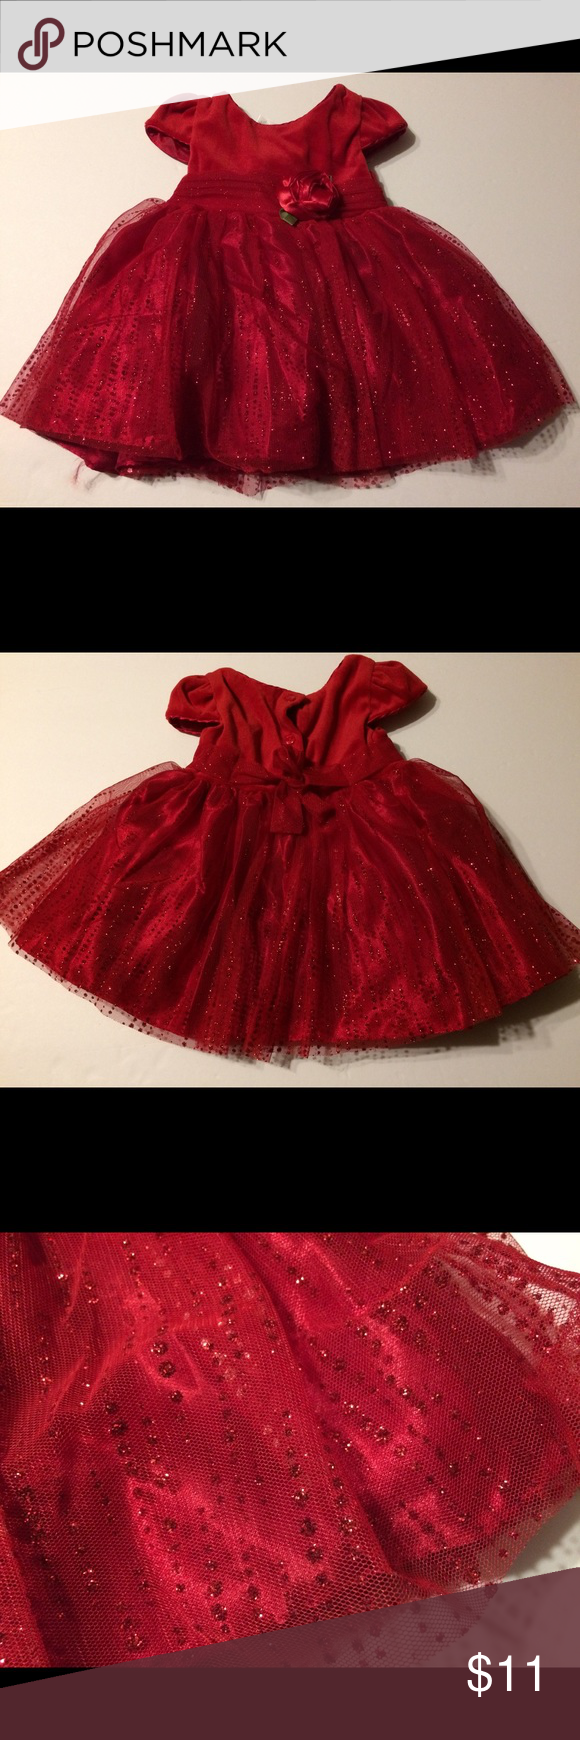 Baby girl red dress size months baby girl red dress size